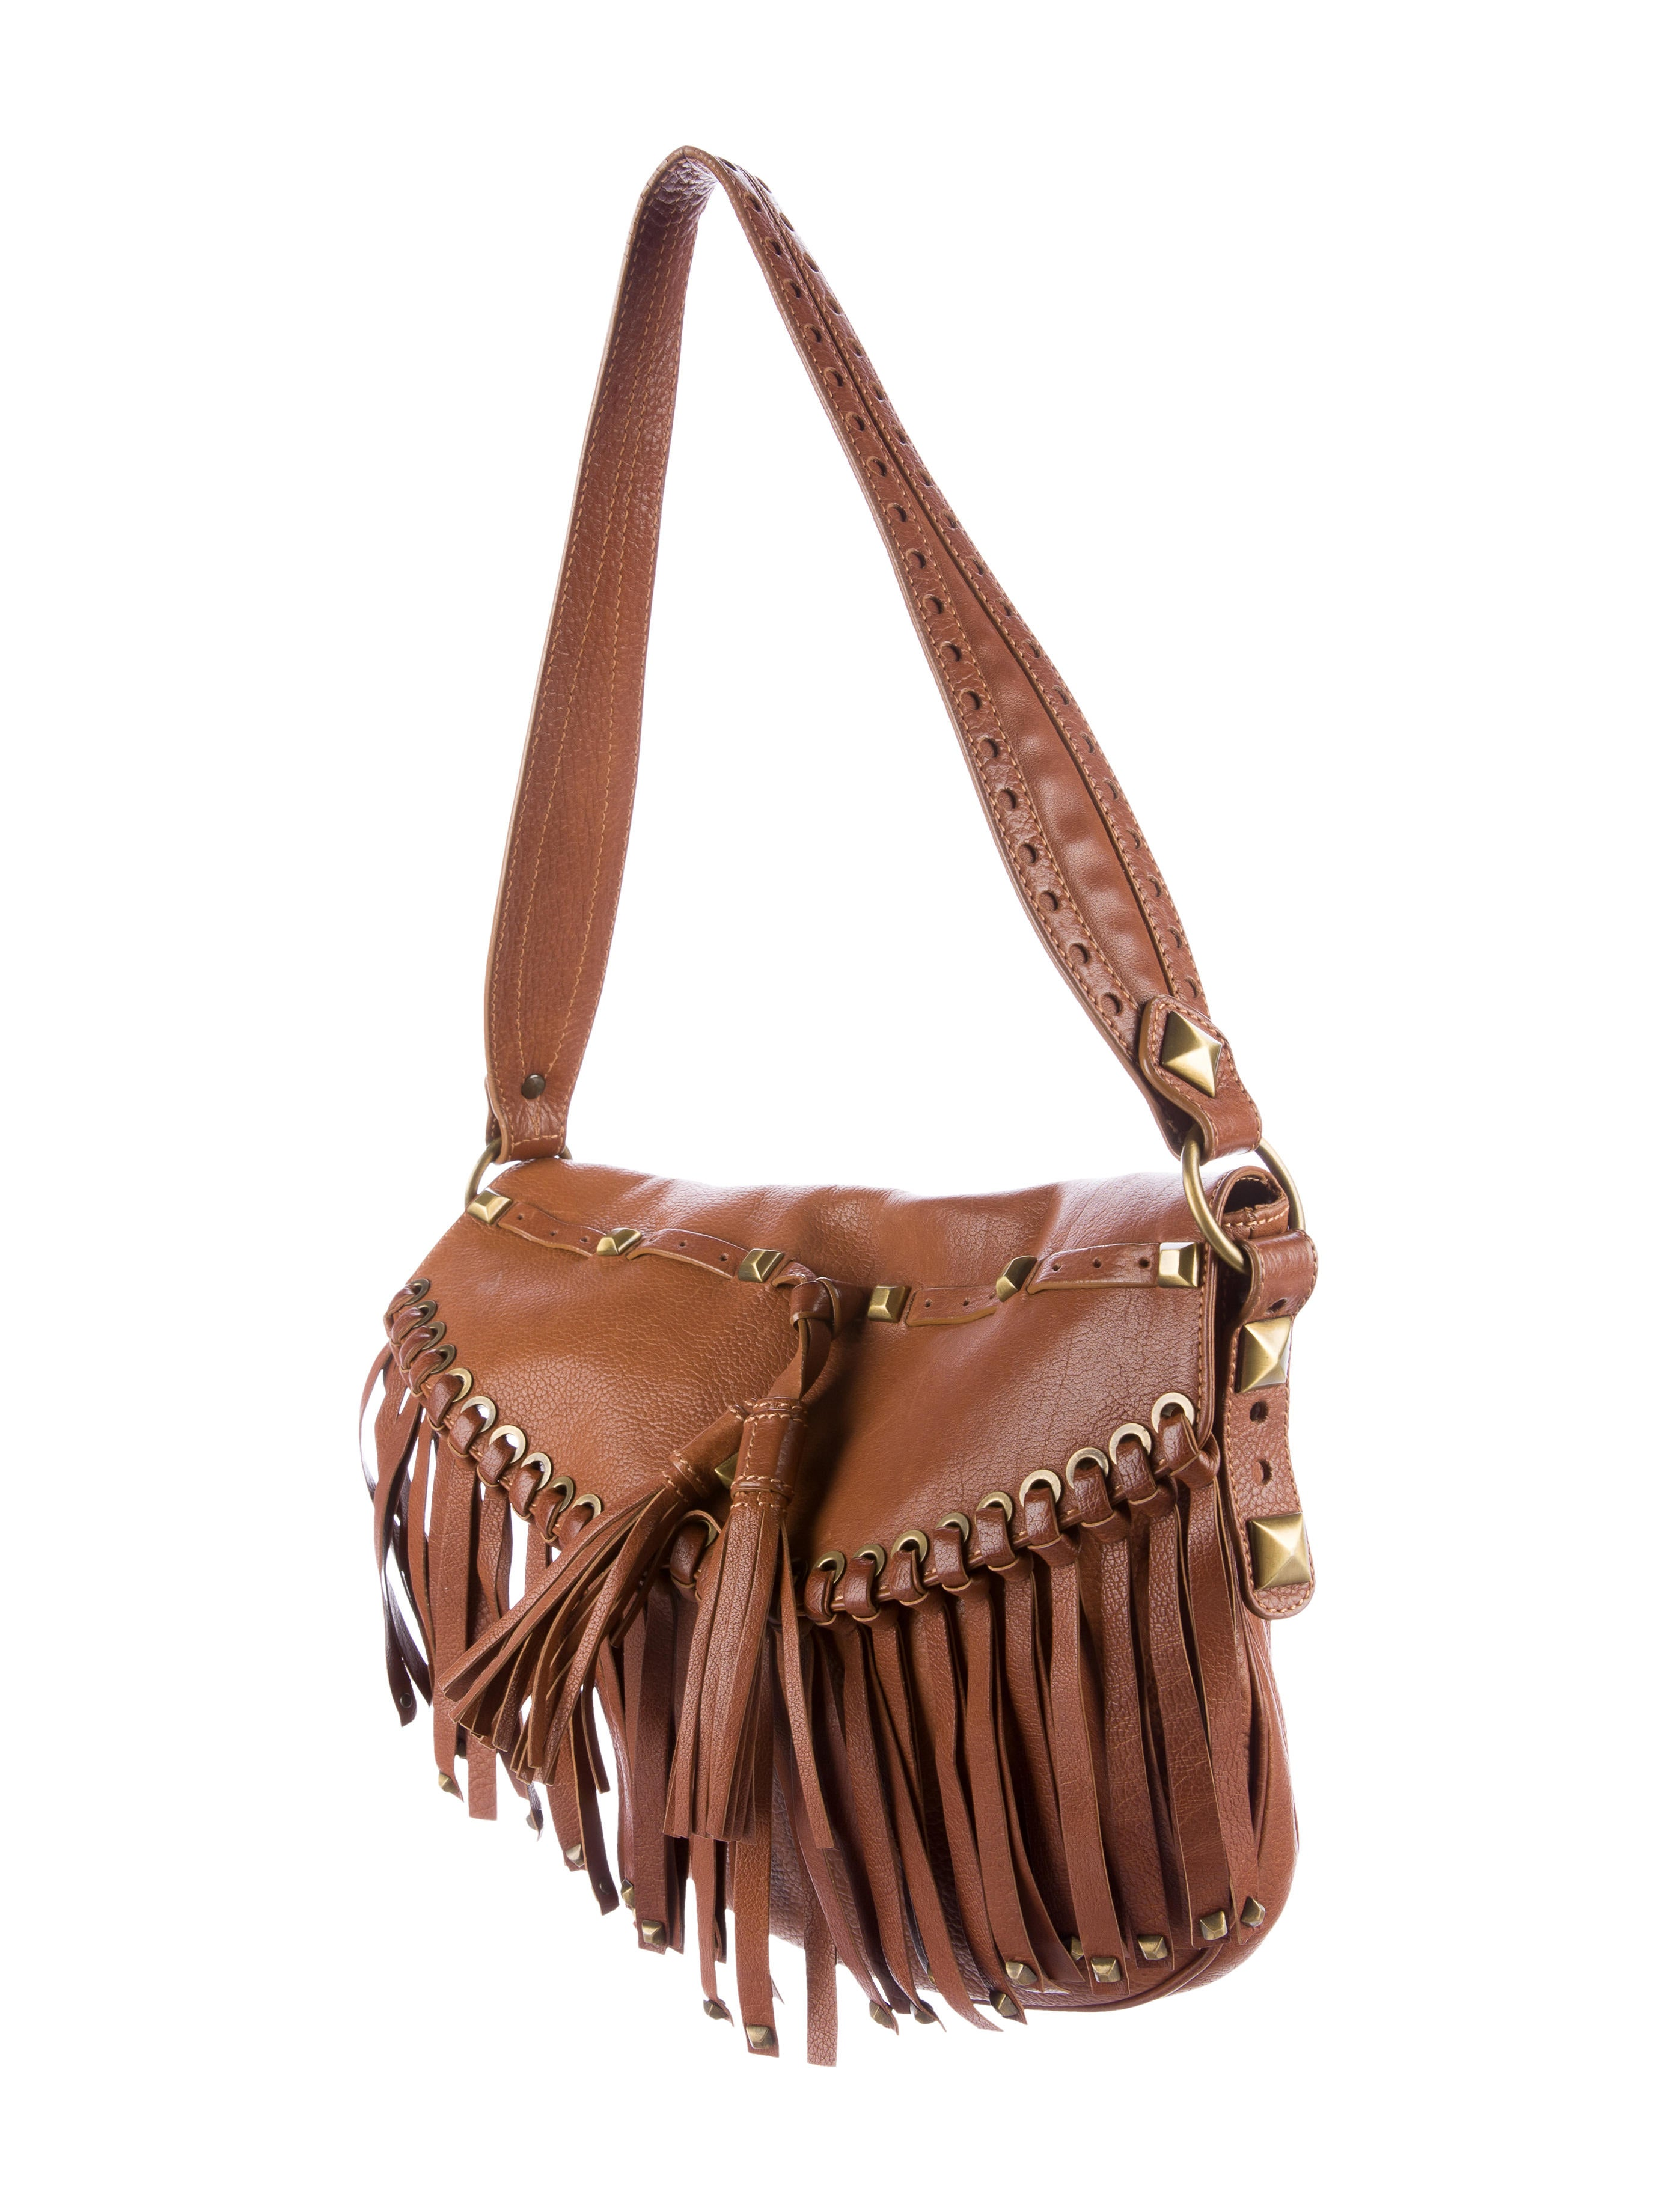 Travel lightly with this tech-savvy handbag. Fringe-trimmed metallic leather opens to reveal card slots, a coin pocket, and special place just for your phone. It's the ultimate party companion.